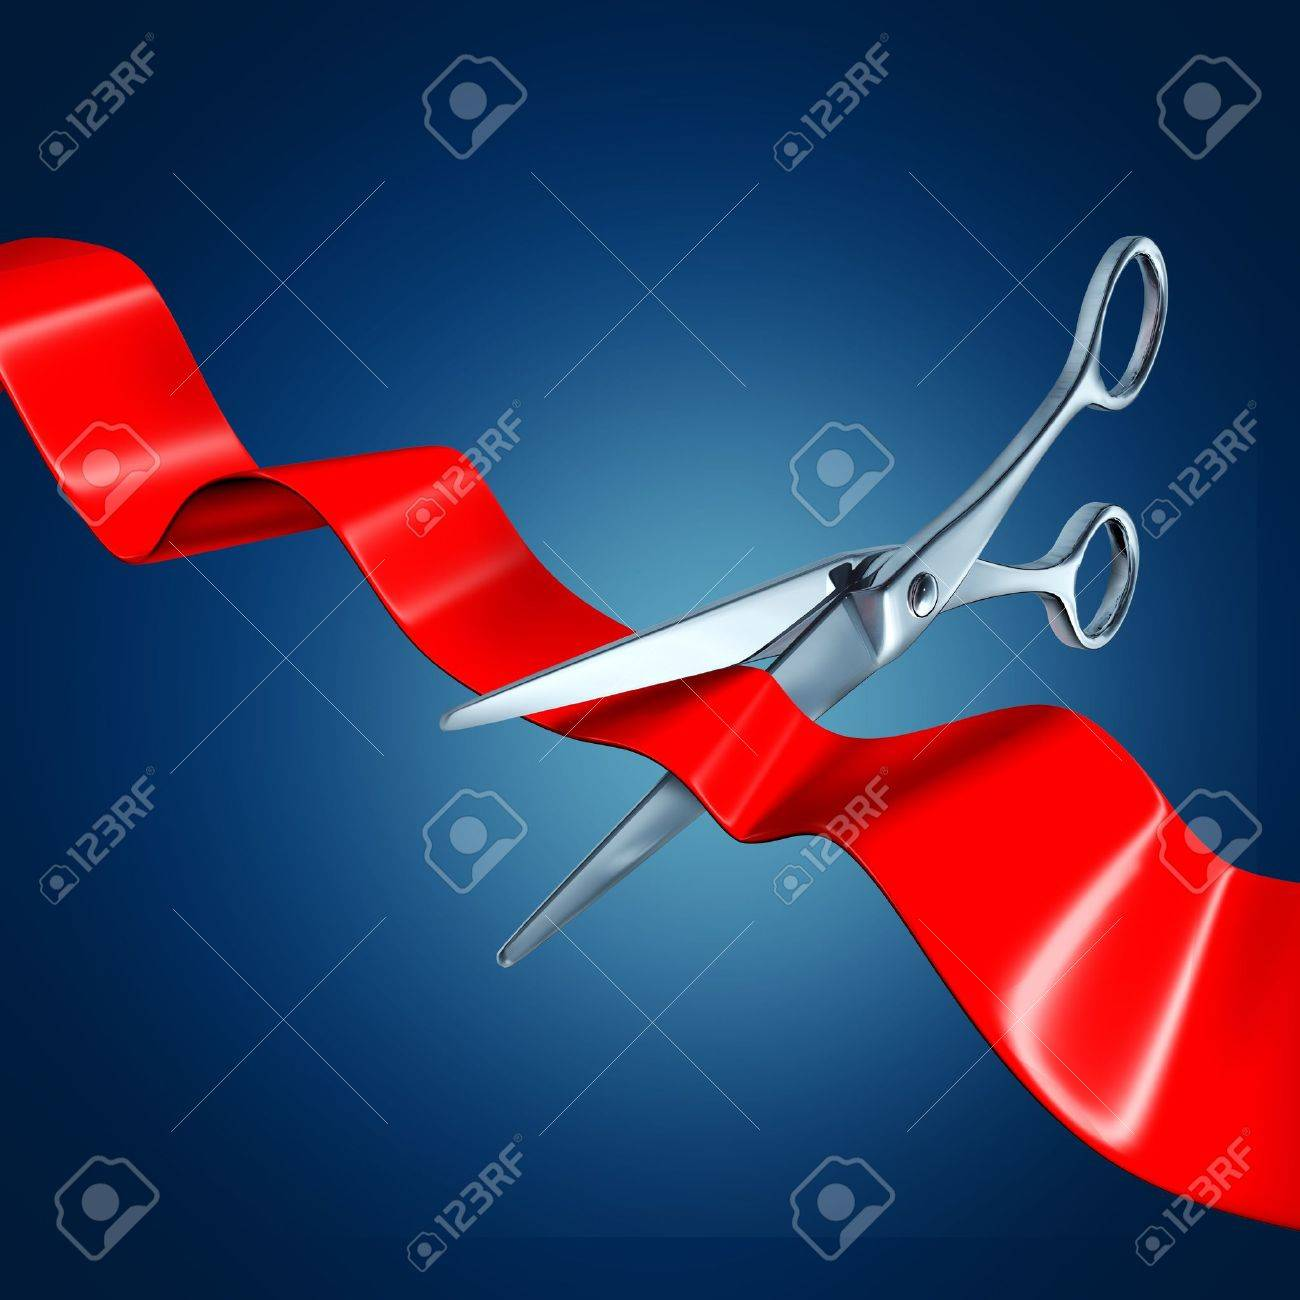 Cutting the ribbon with a blue background representing a grand opening event. Stock Photo - 10909936